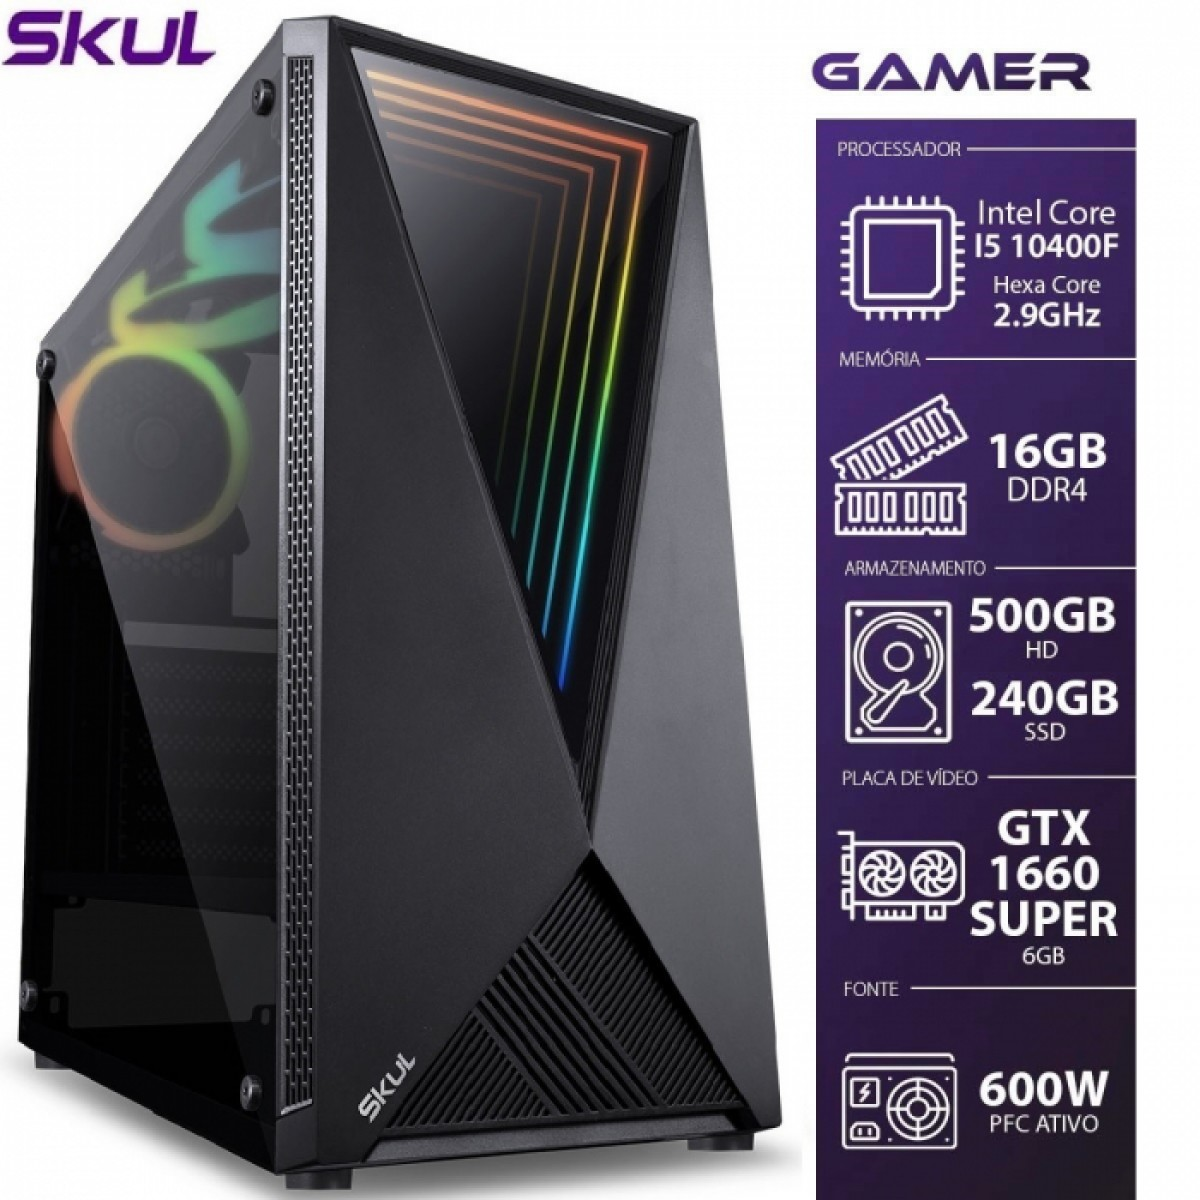 PC Gamer Skul T-Gamer 5000 i5 10400F / 16GB DDR4 / SSD 240GB / HD 500GB / GTX 1660 Super / FONTE 600W